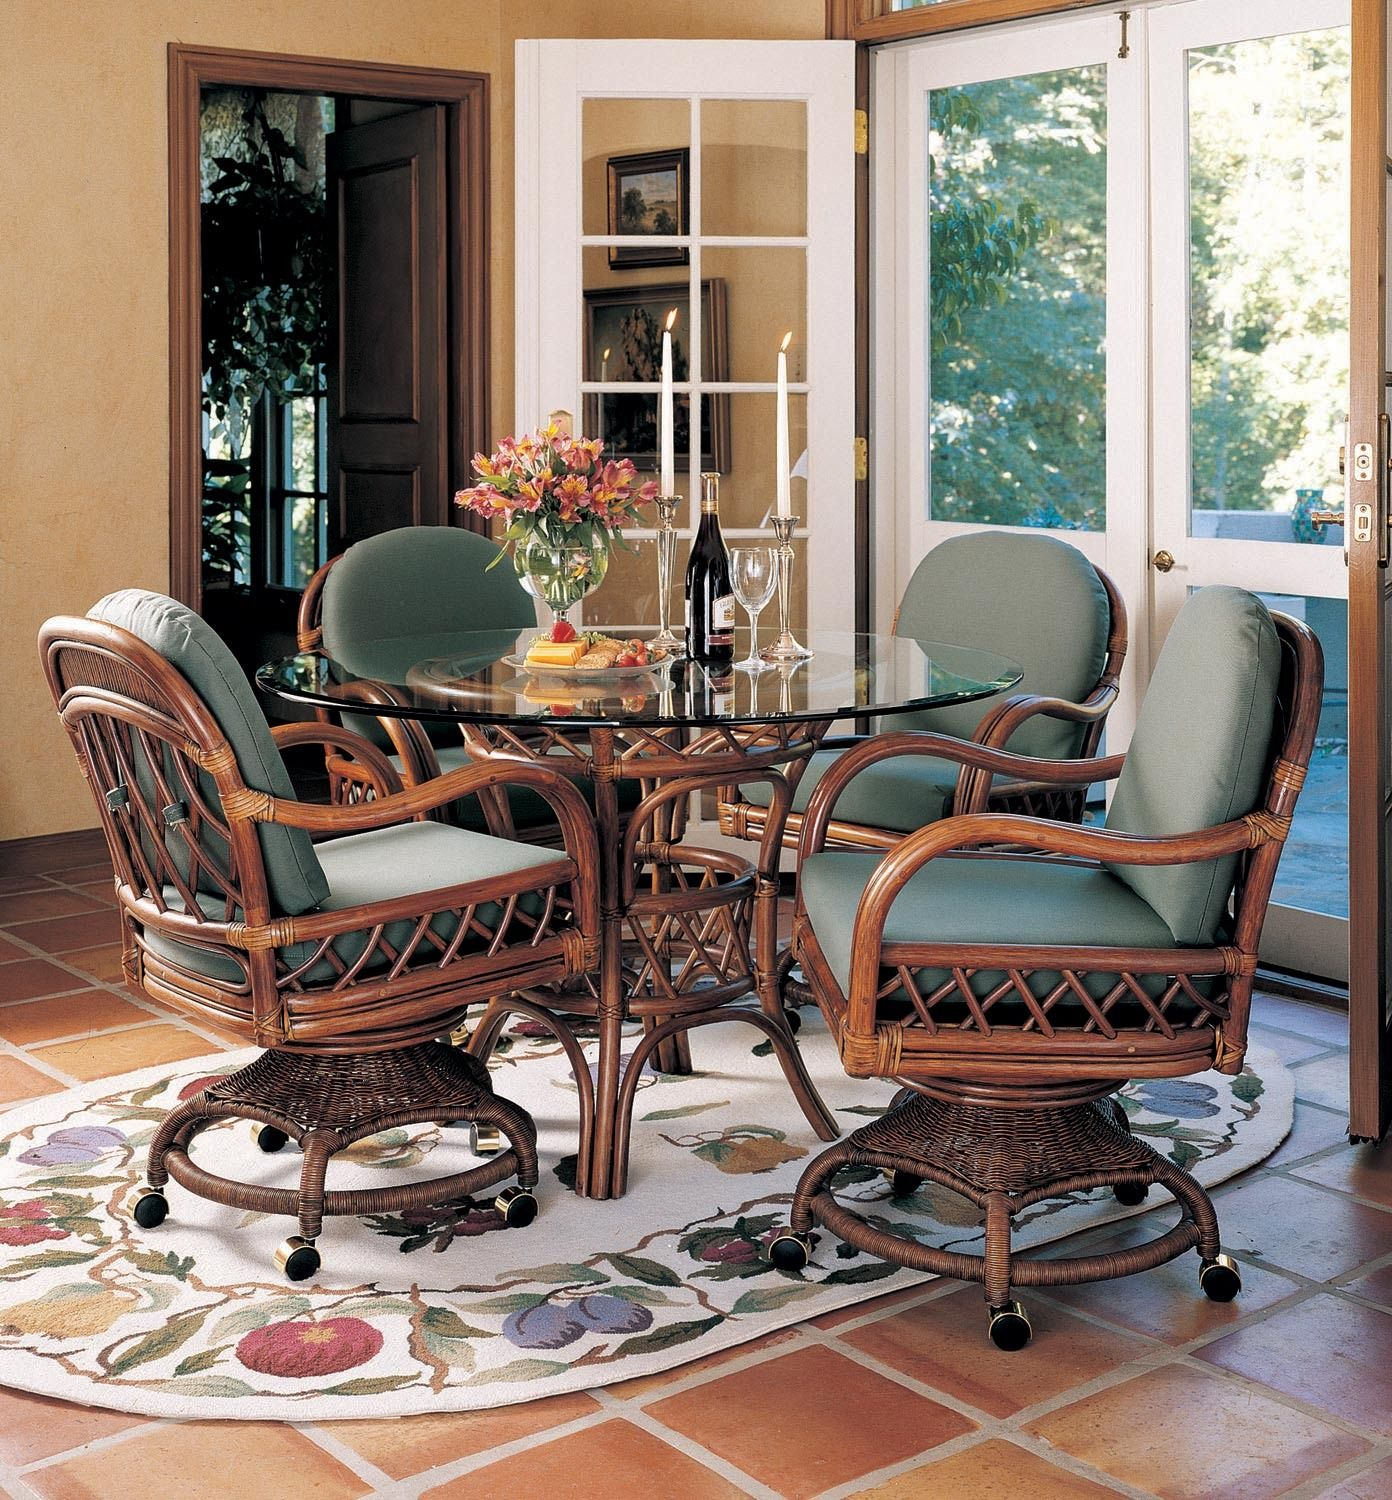 Antigua 48 round wickerrattan table dining room set by